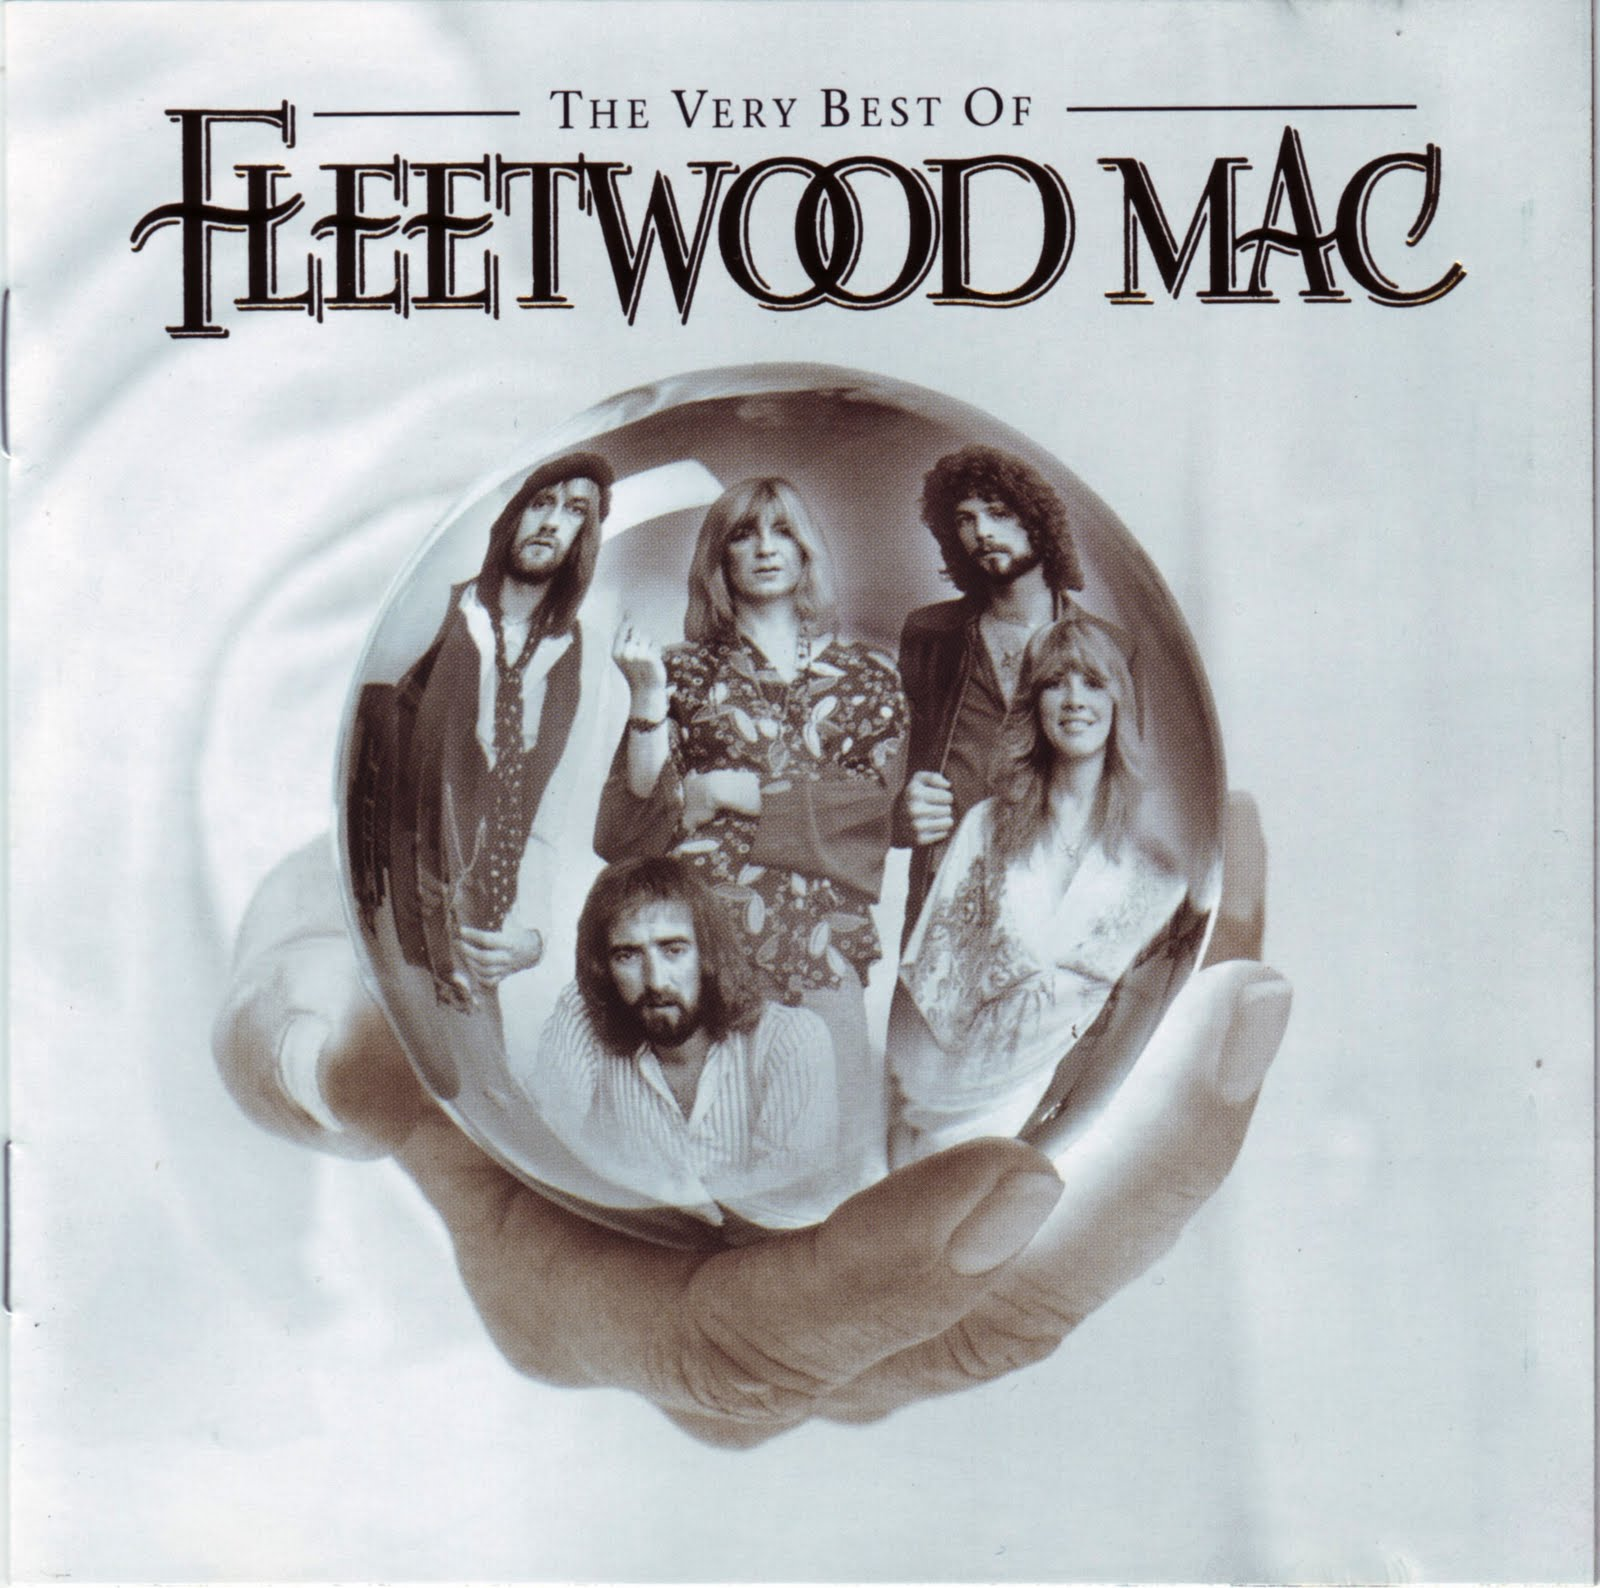 Caratulas De Cds Mi Colecci 243 N Fleetwood Mac The